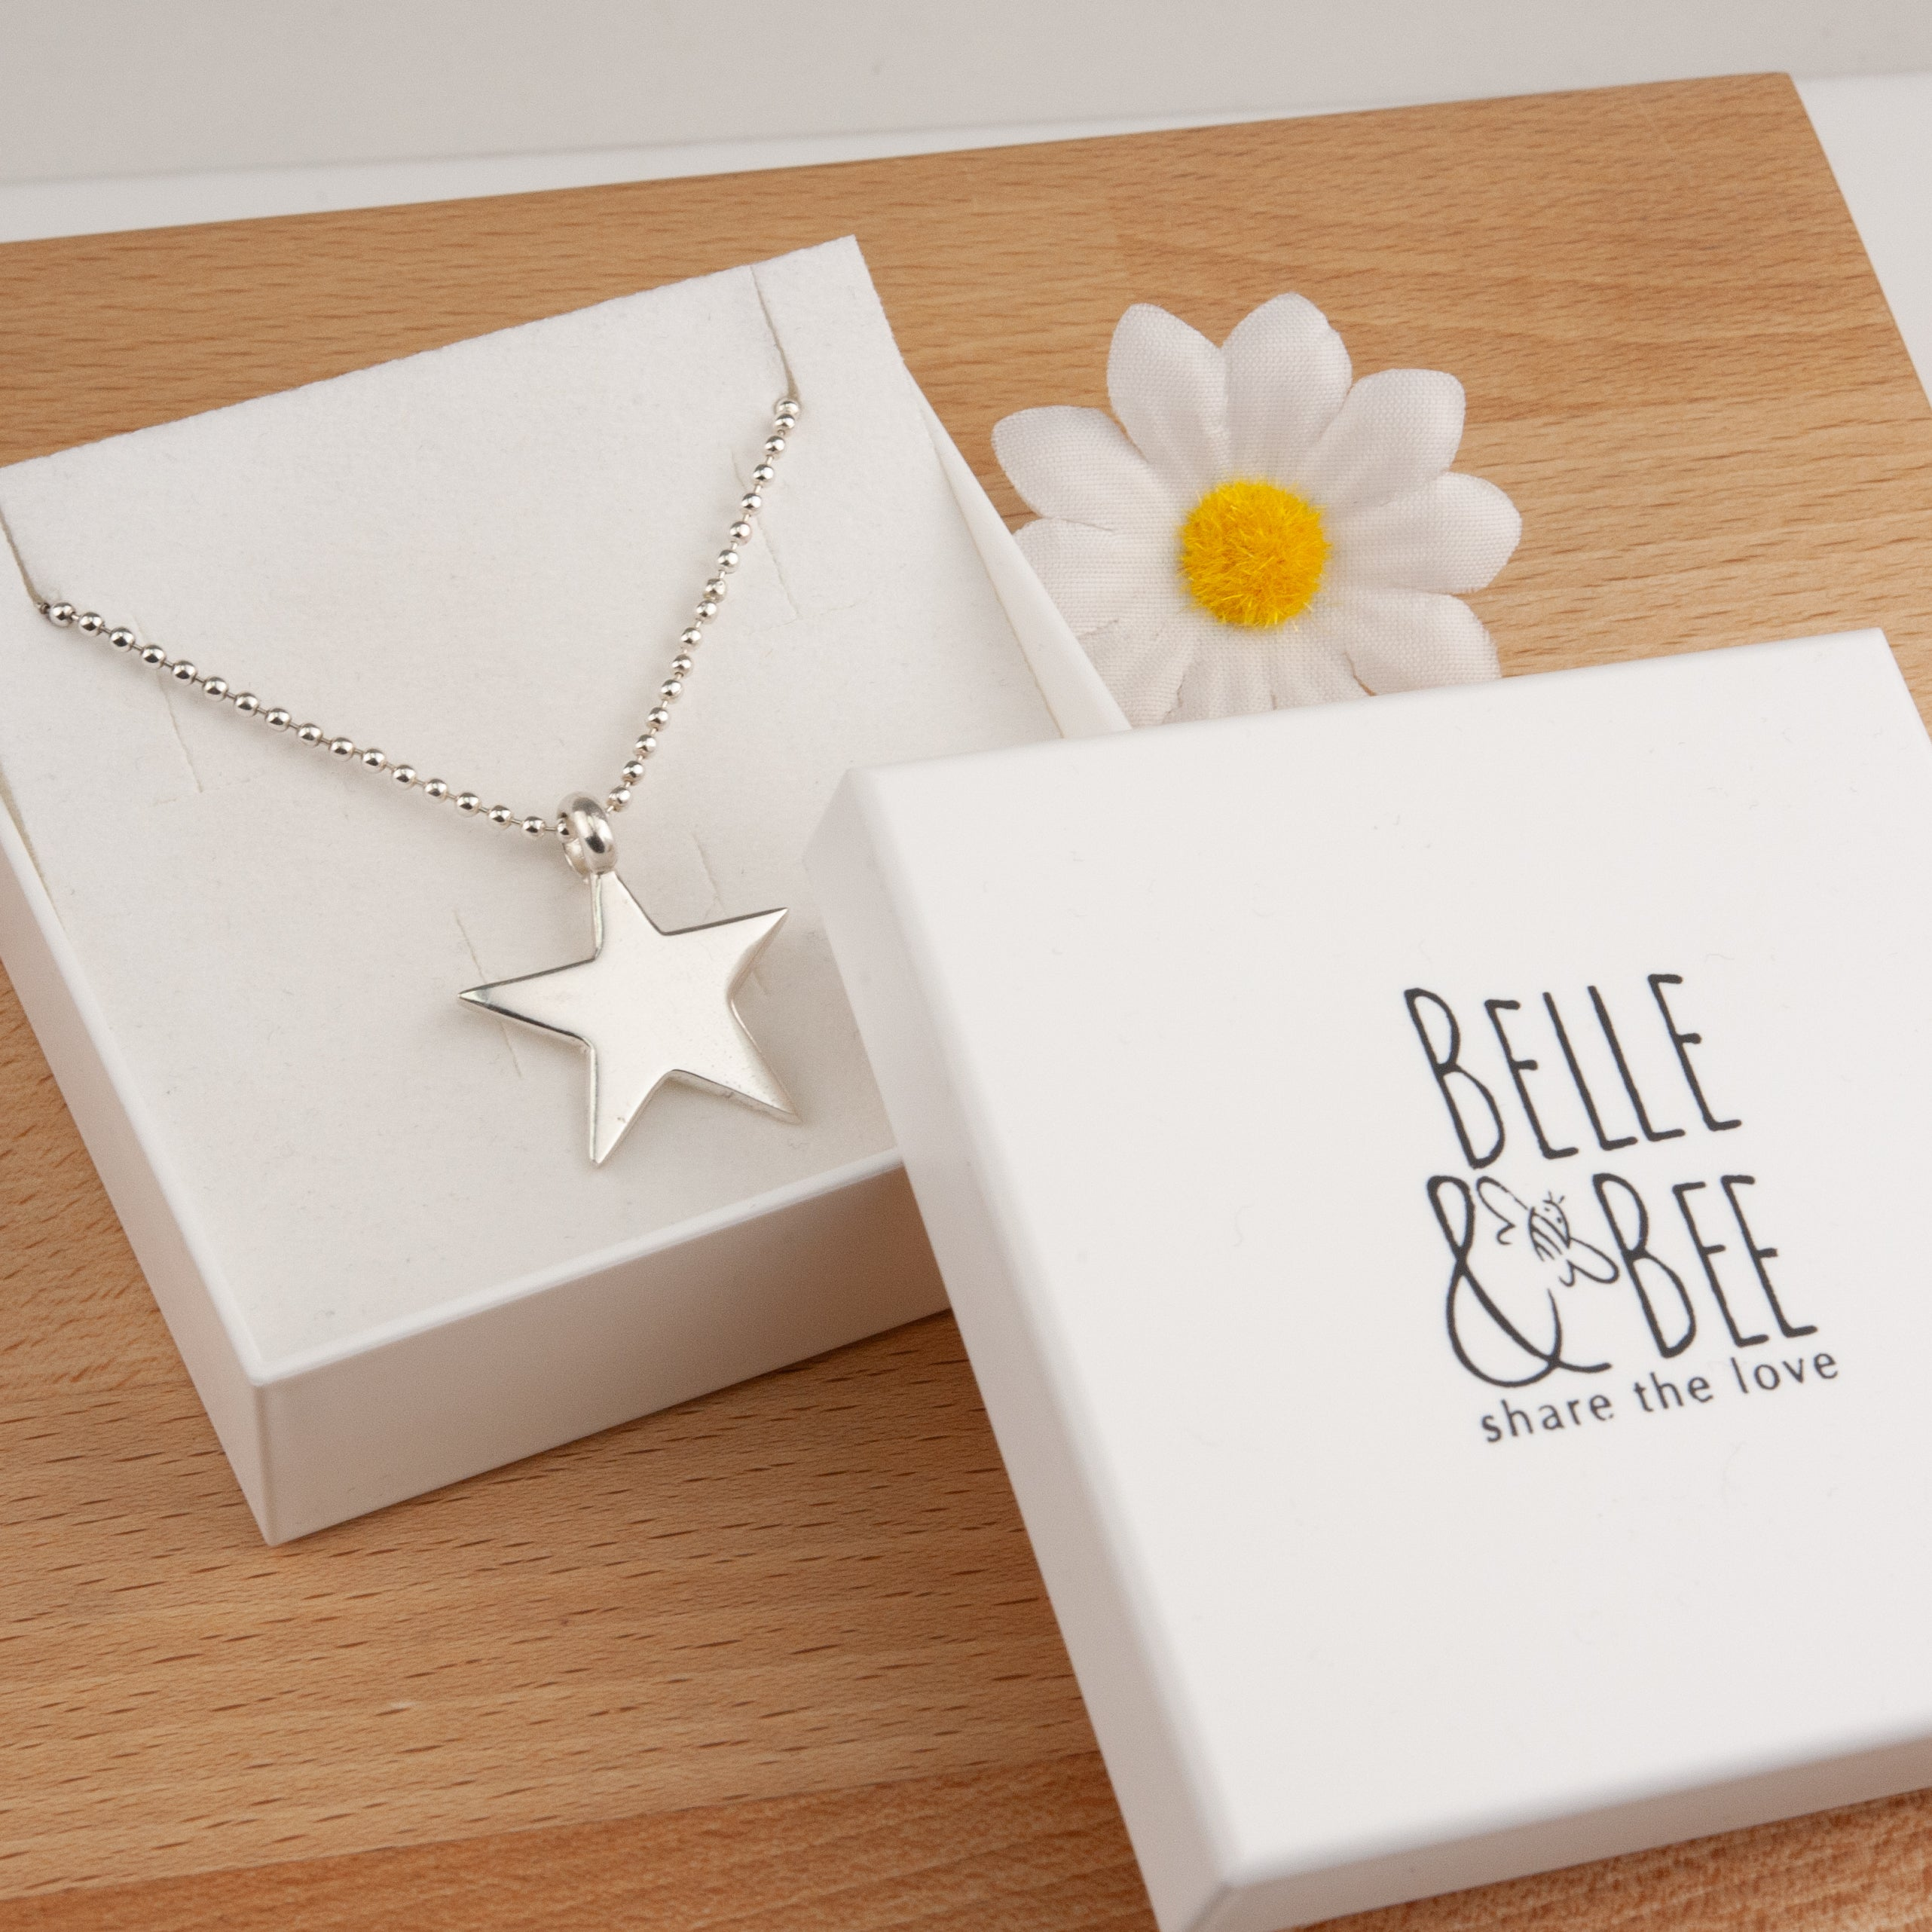 Belle & Bee sterling silver star necklace